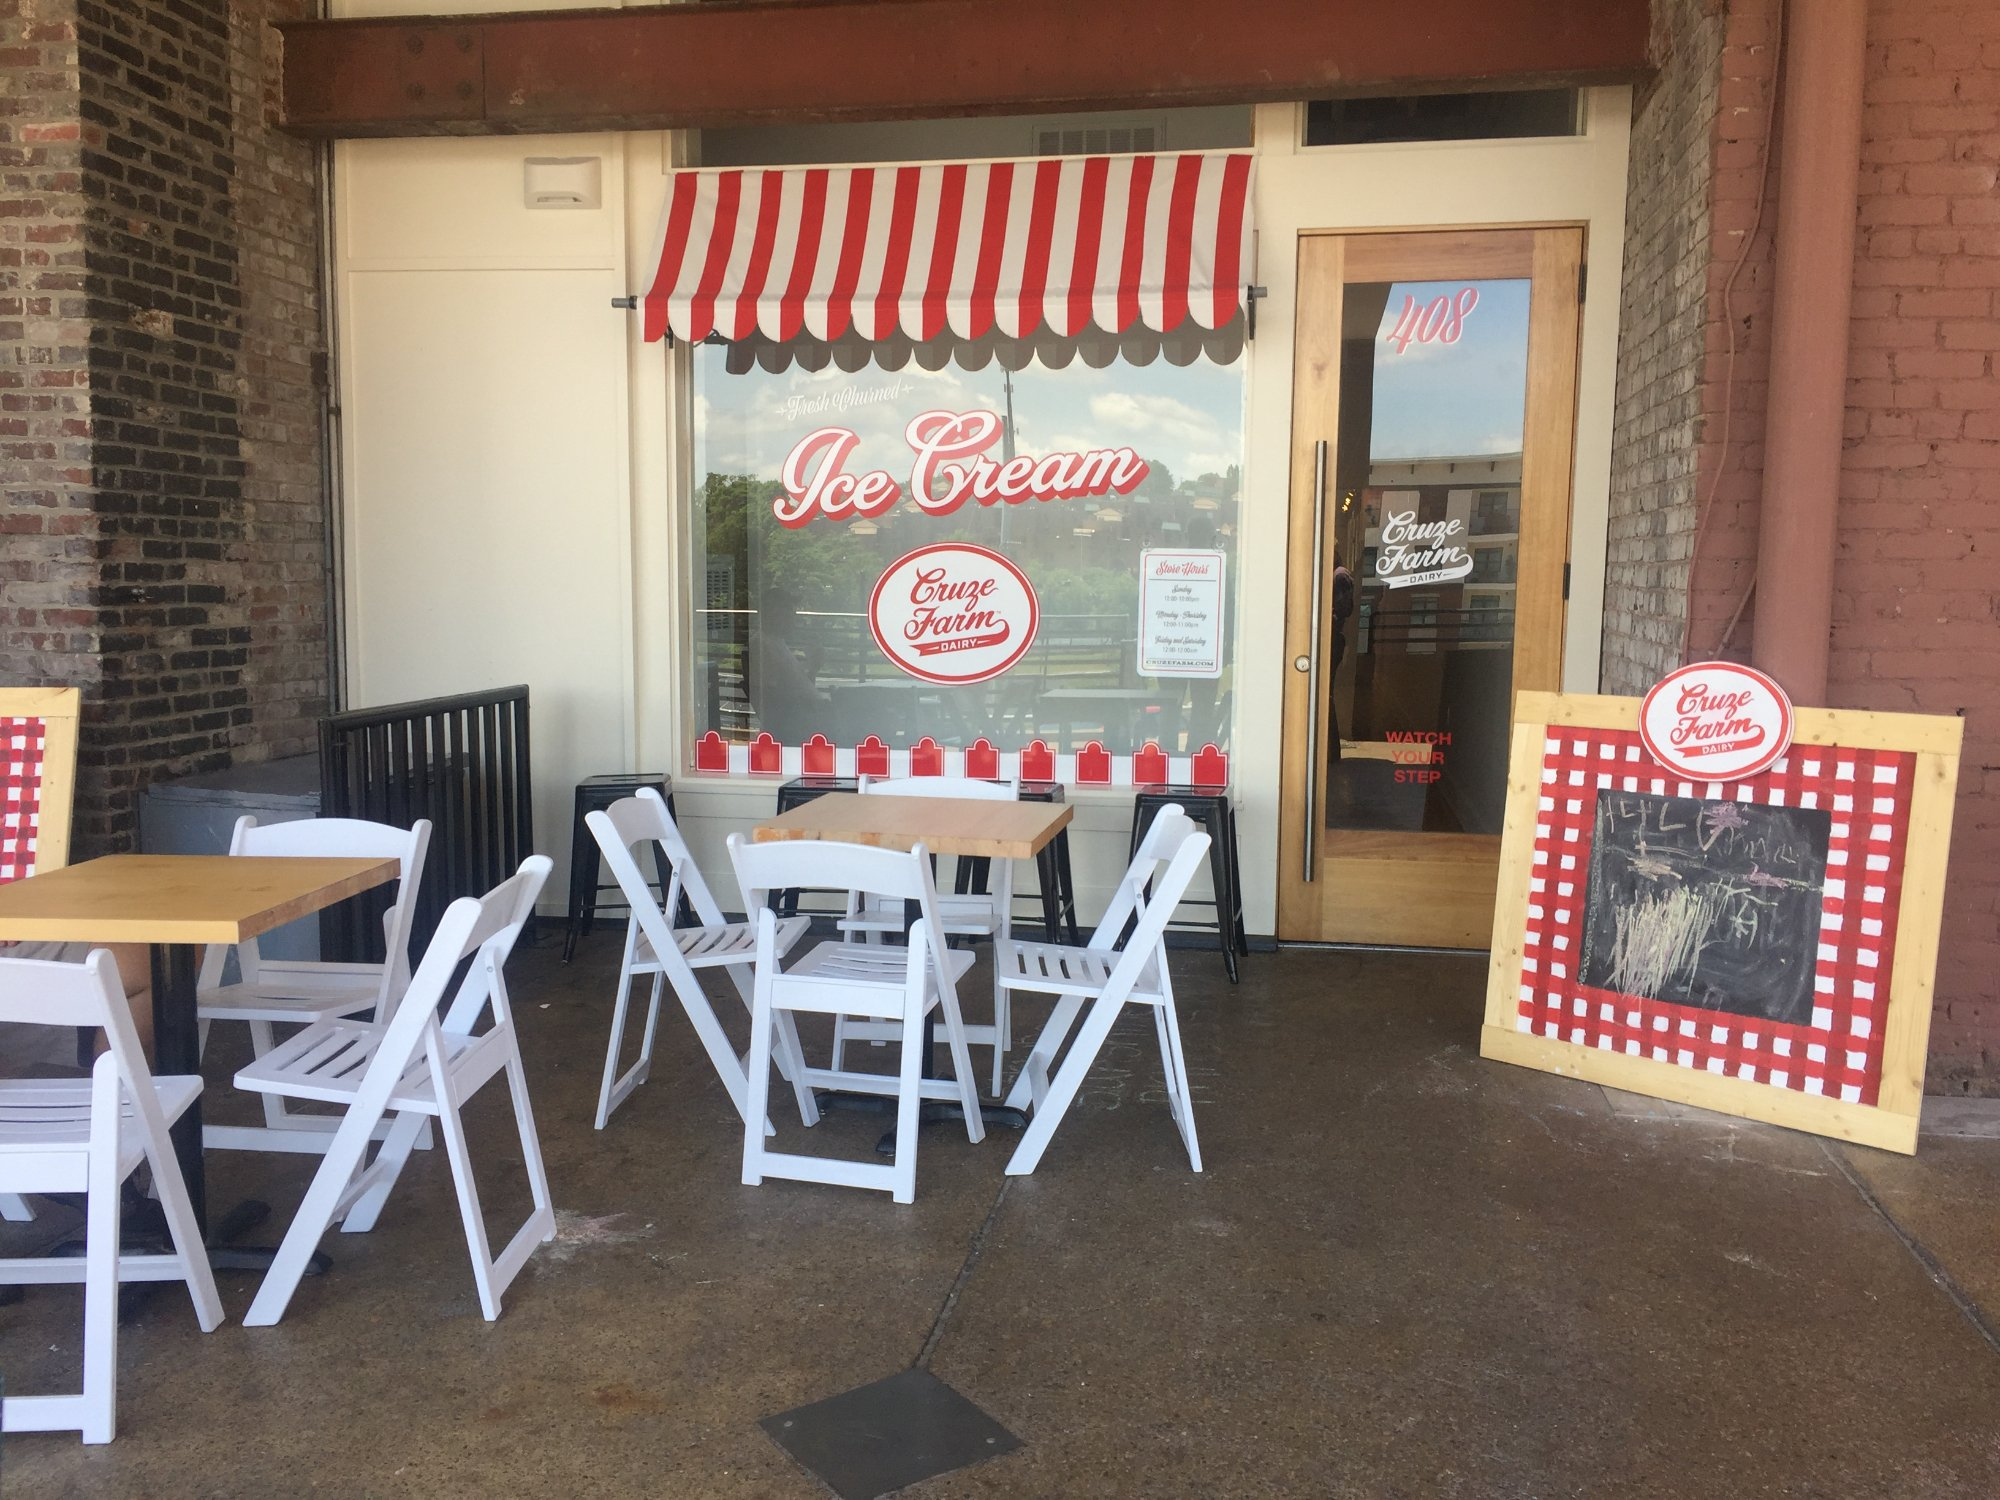 Cruze Farm Knoxville Restaurant Reviews Phone Number & s